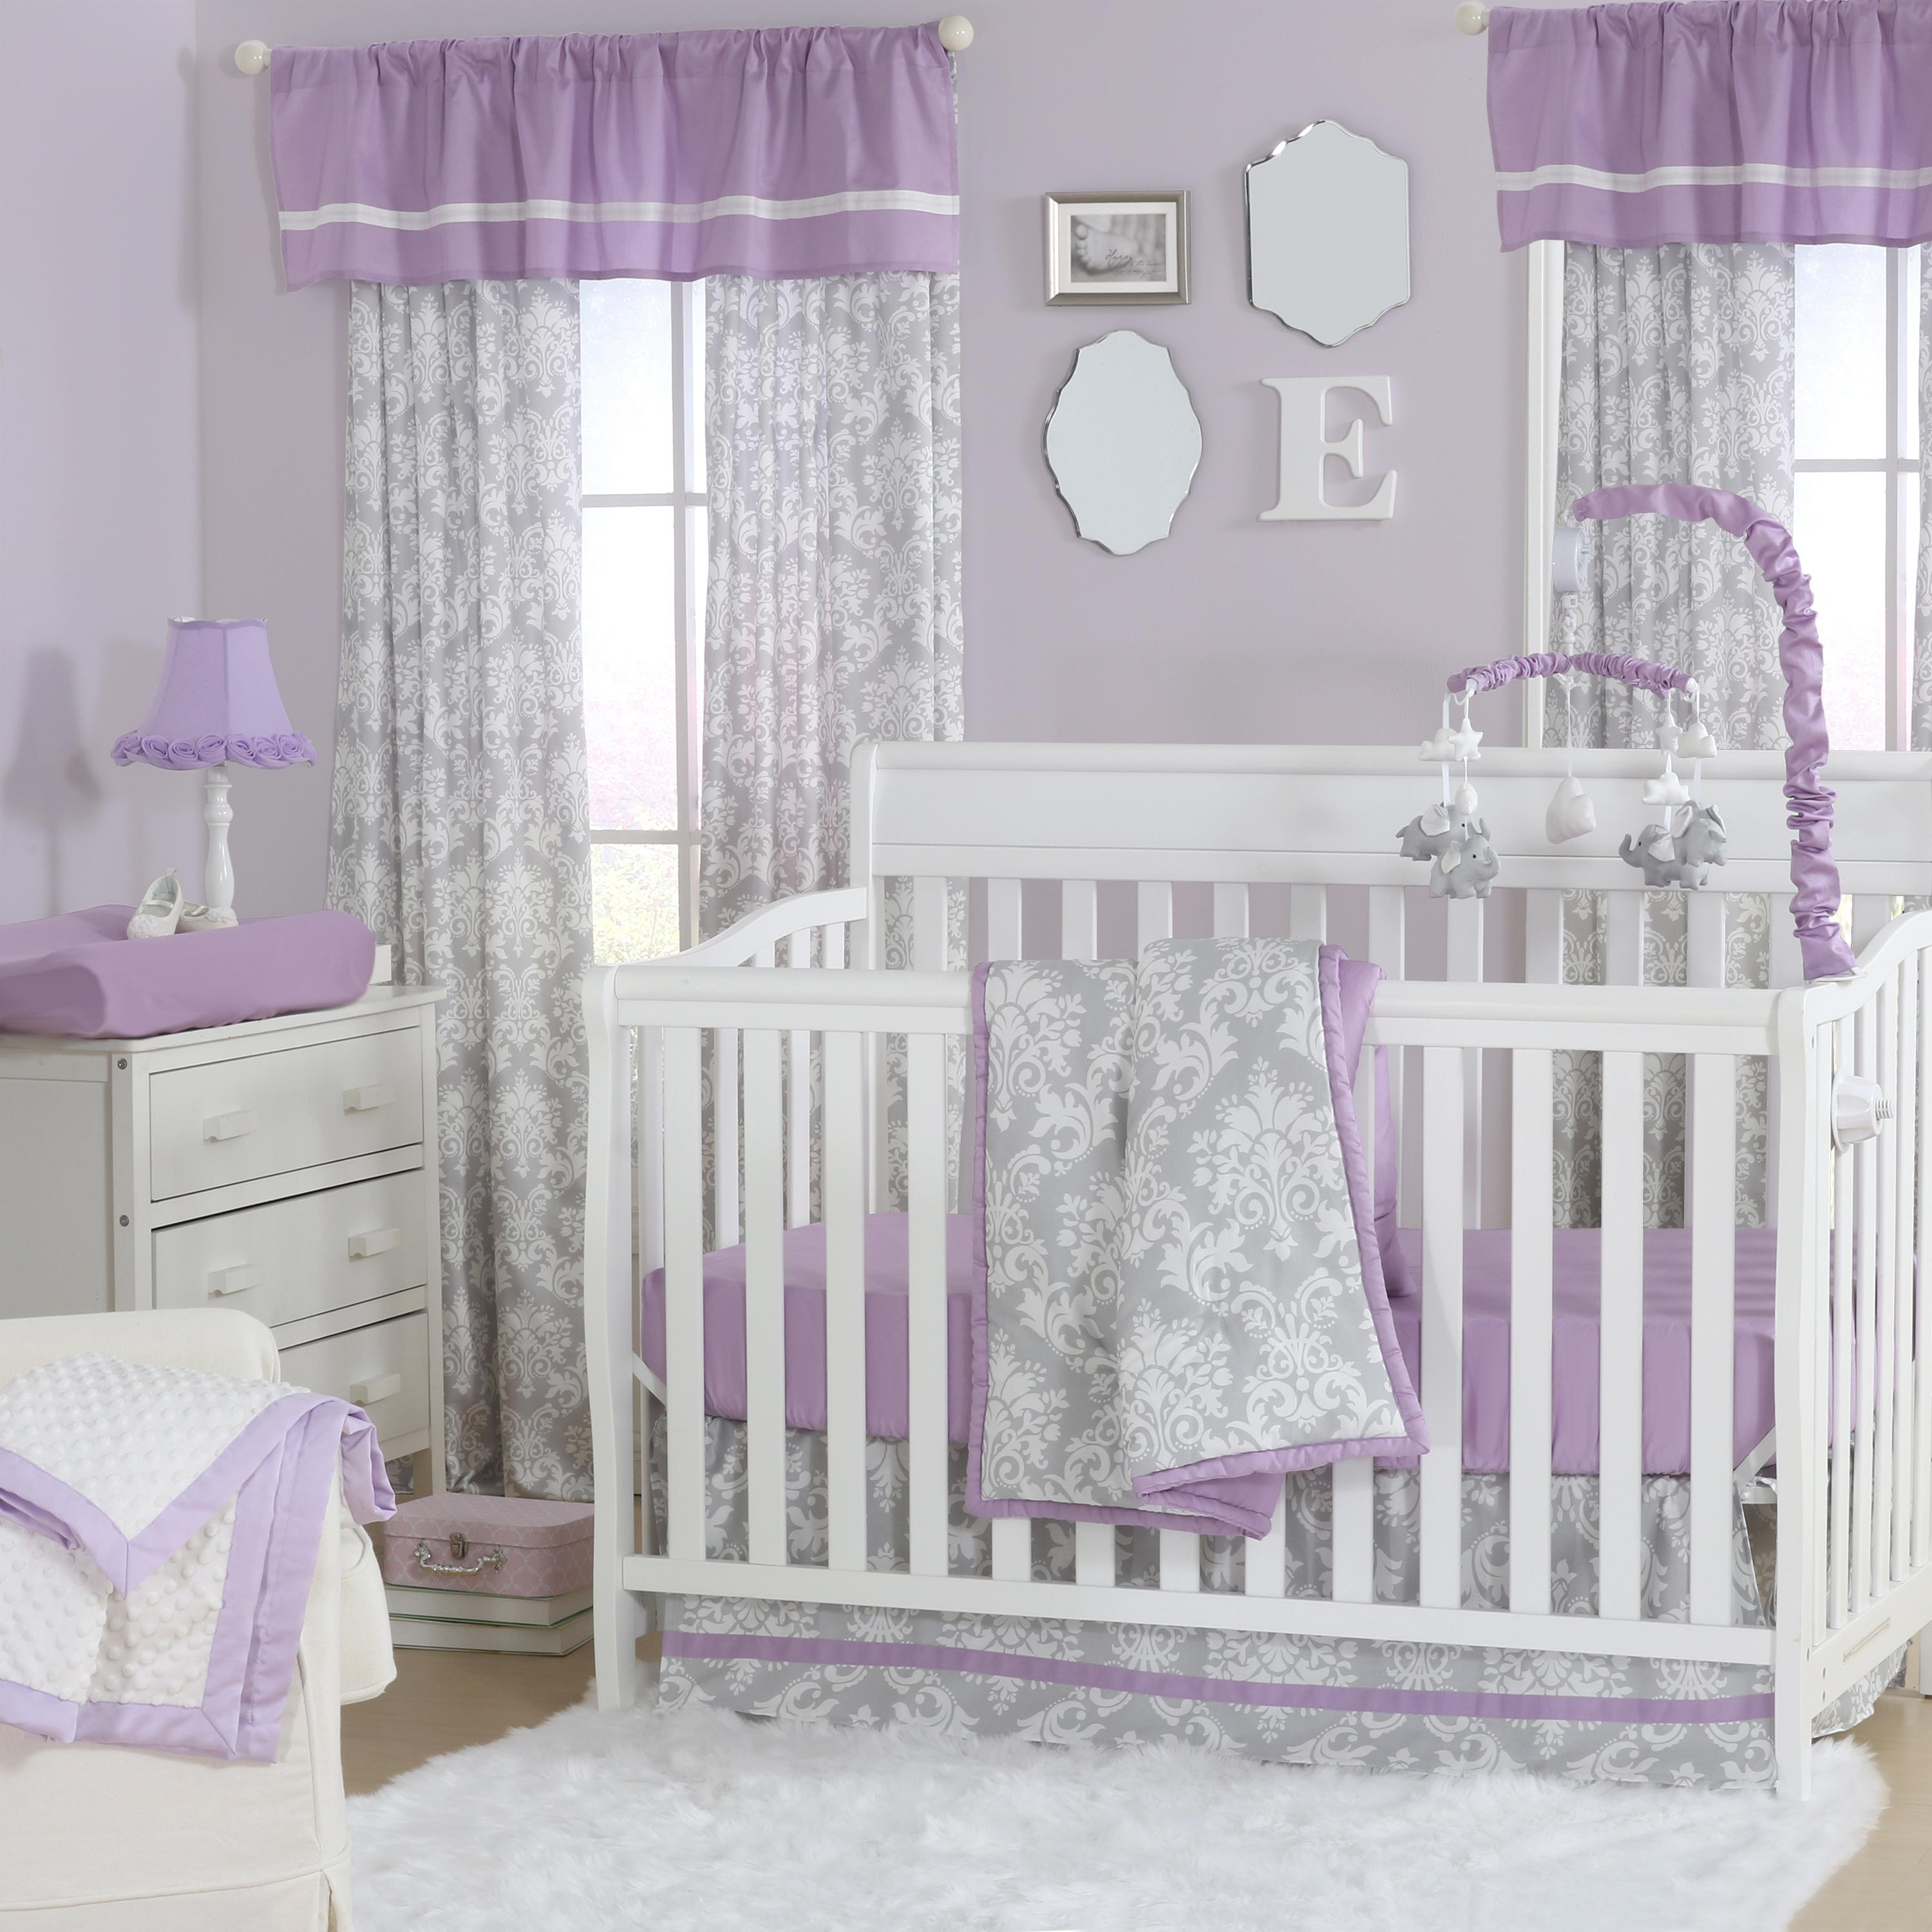 Purple and grey damask bedding - A Combination Of Print And Purple Hues Will Having You Falling For This Sophisticated Nursery Collection Classic Grey And White Damask Is Contrasted With A